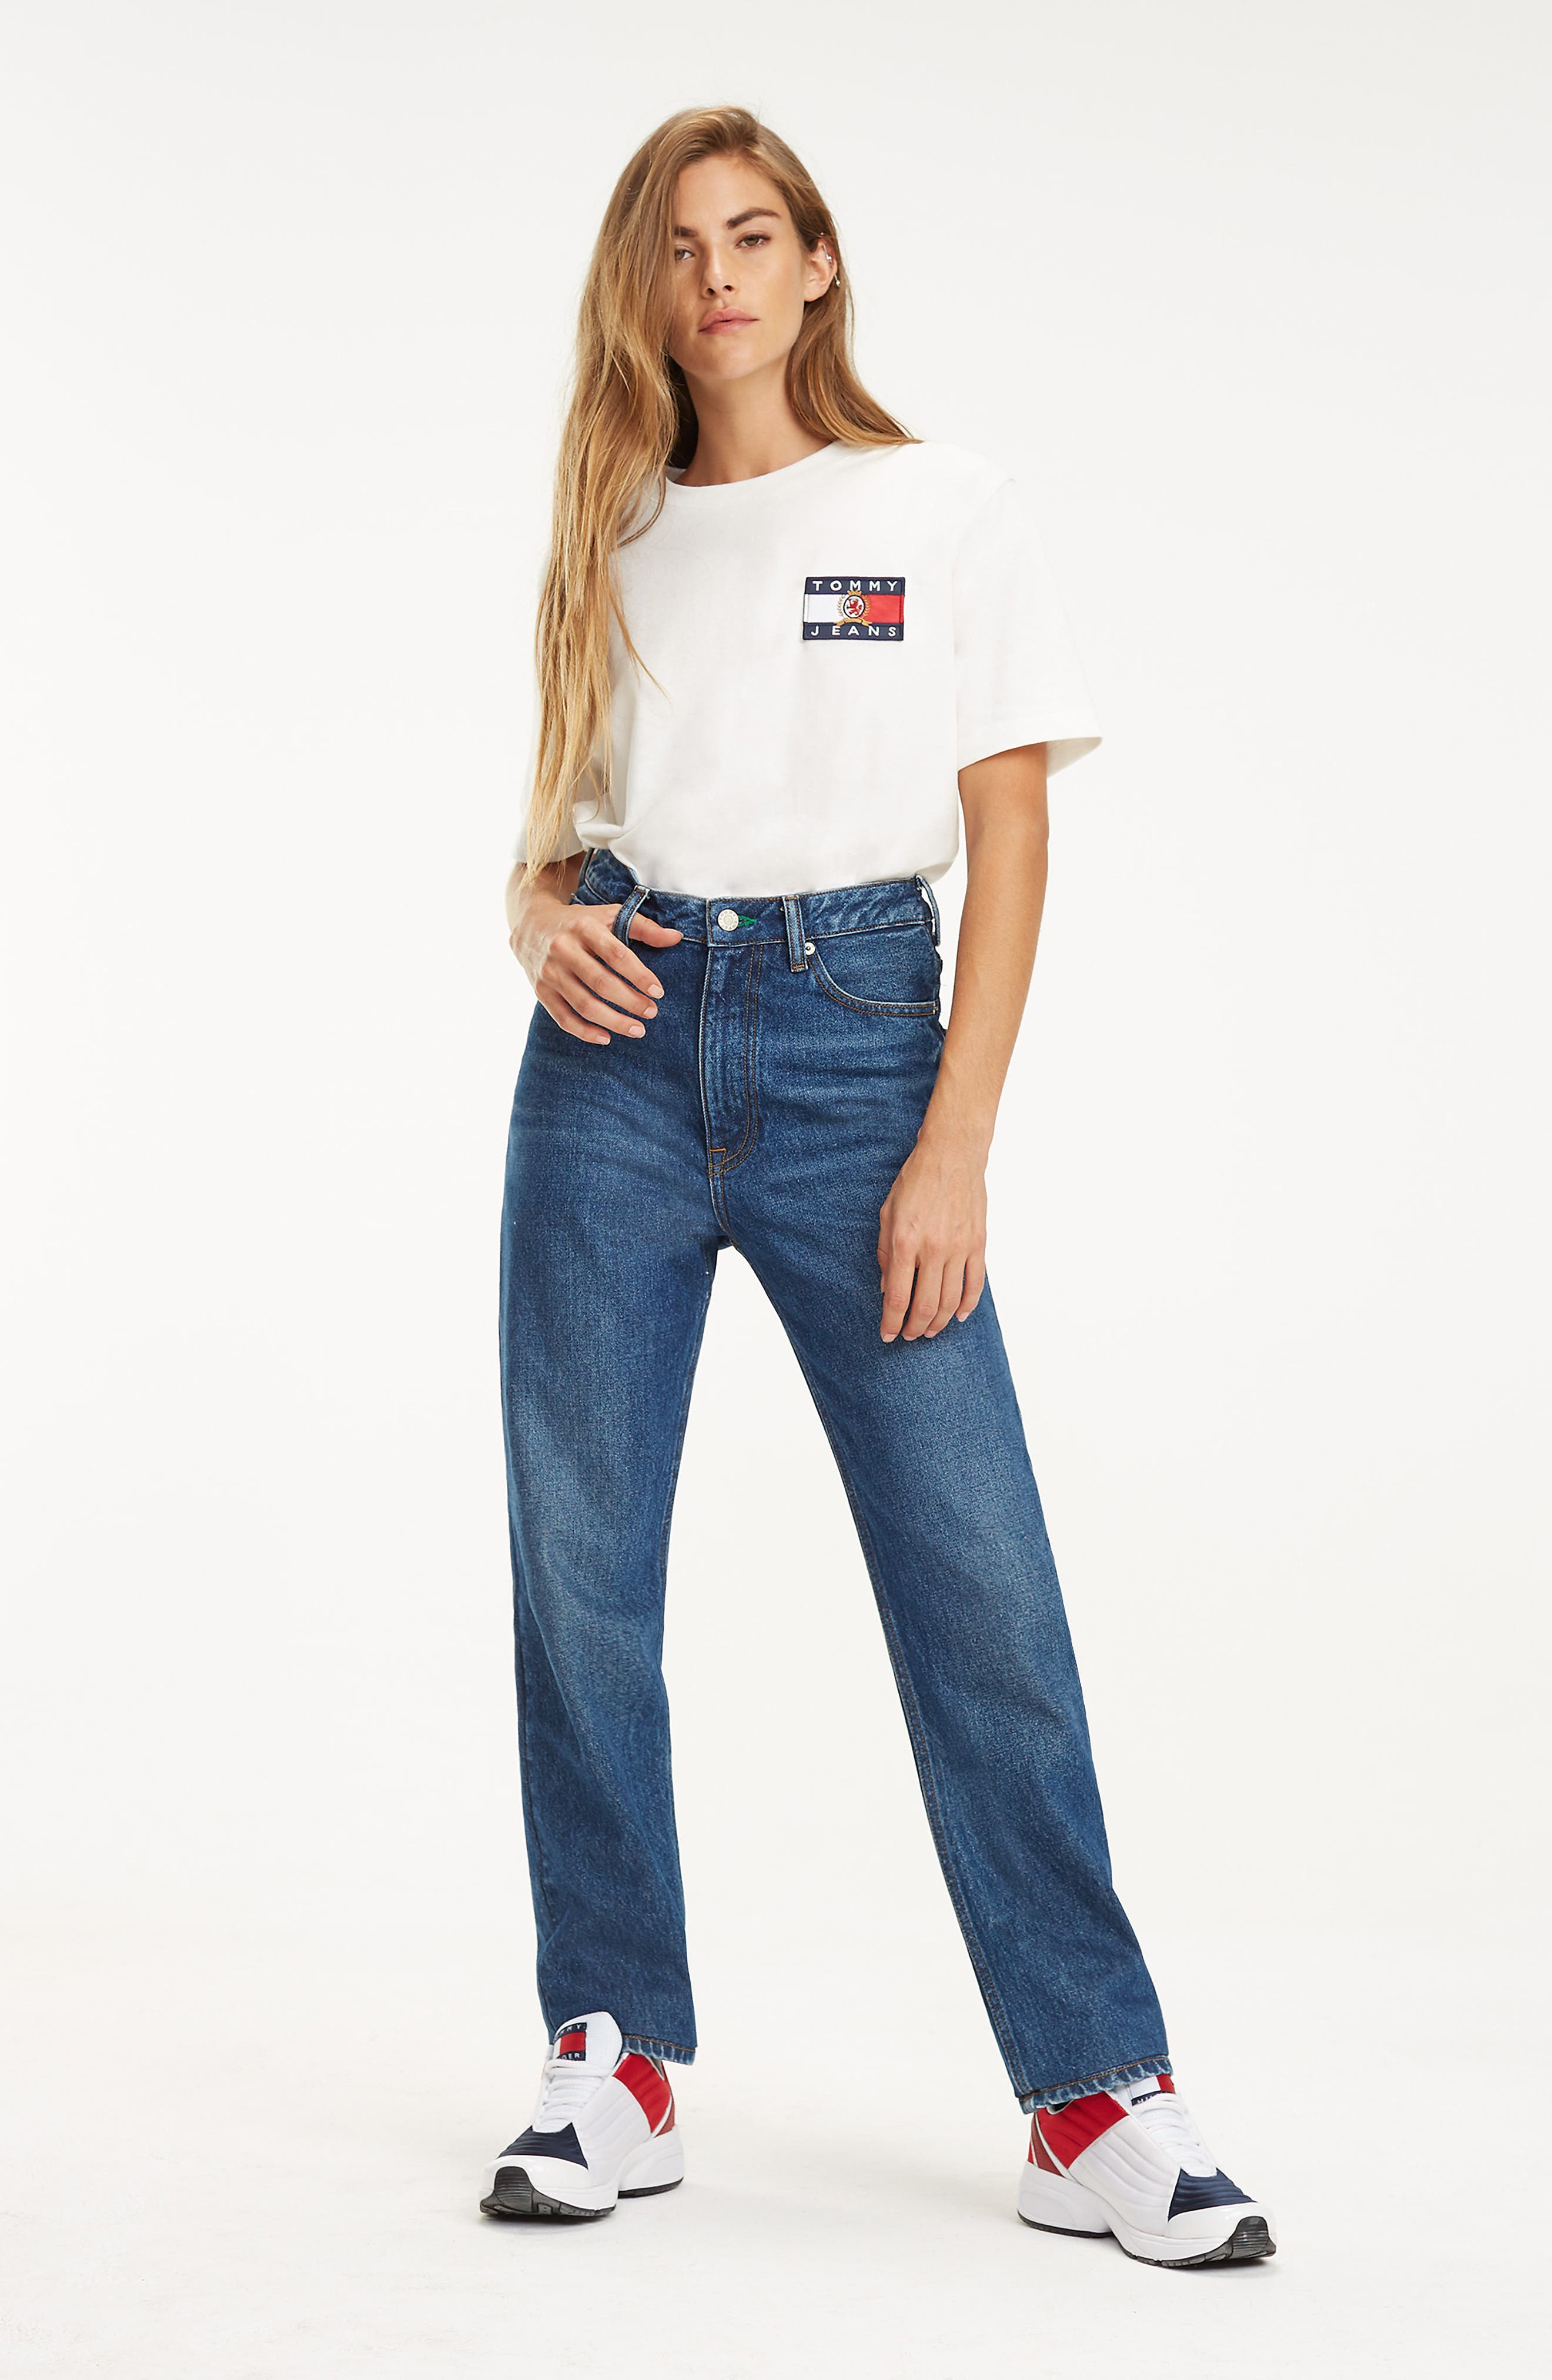 TOMMY JEANS,                             Crest Capsule Flag Tee,                             Alternate thumbnail 4, color,                             100